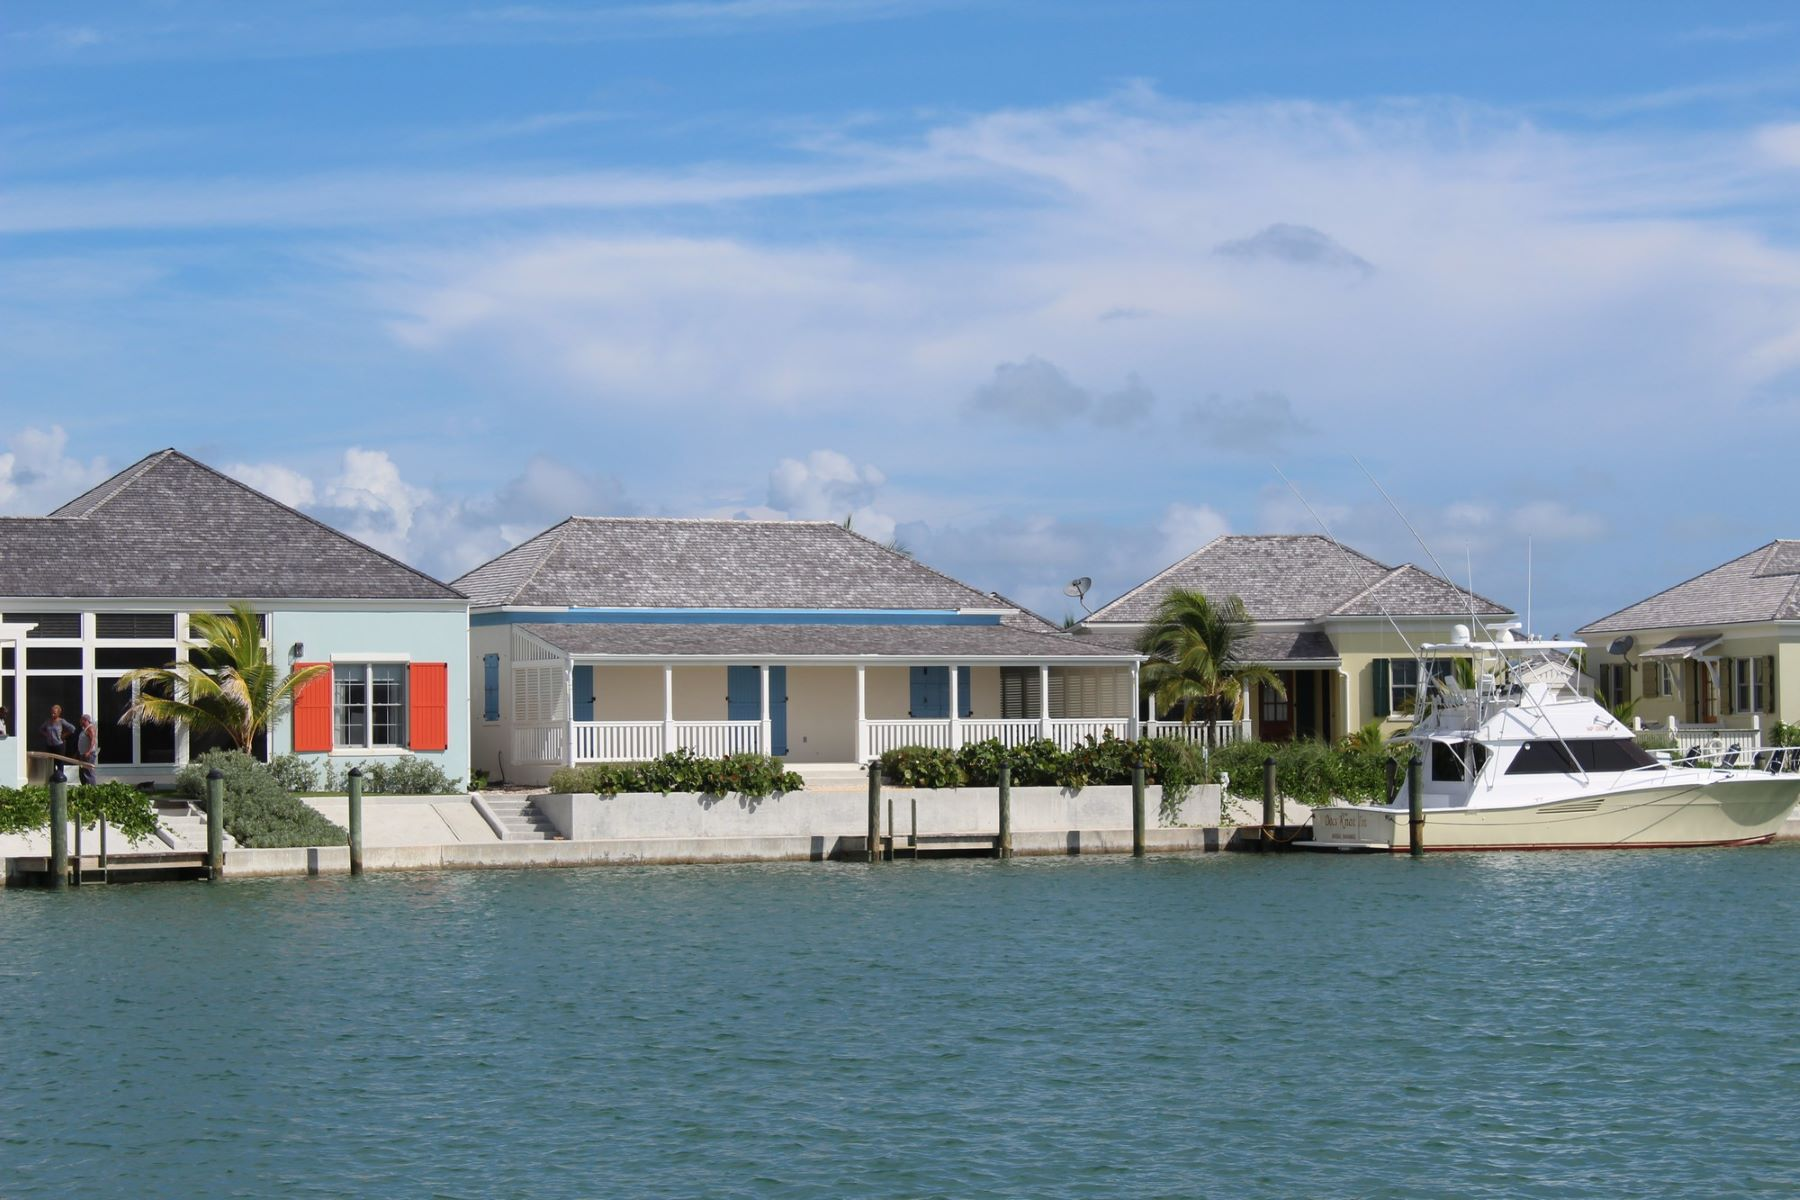 Single Family Home for Sale at Carioca Cottage, The Island at Schooner Bay Village Schooner Bay, Abaco Bahamas